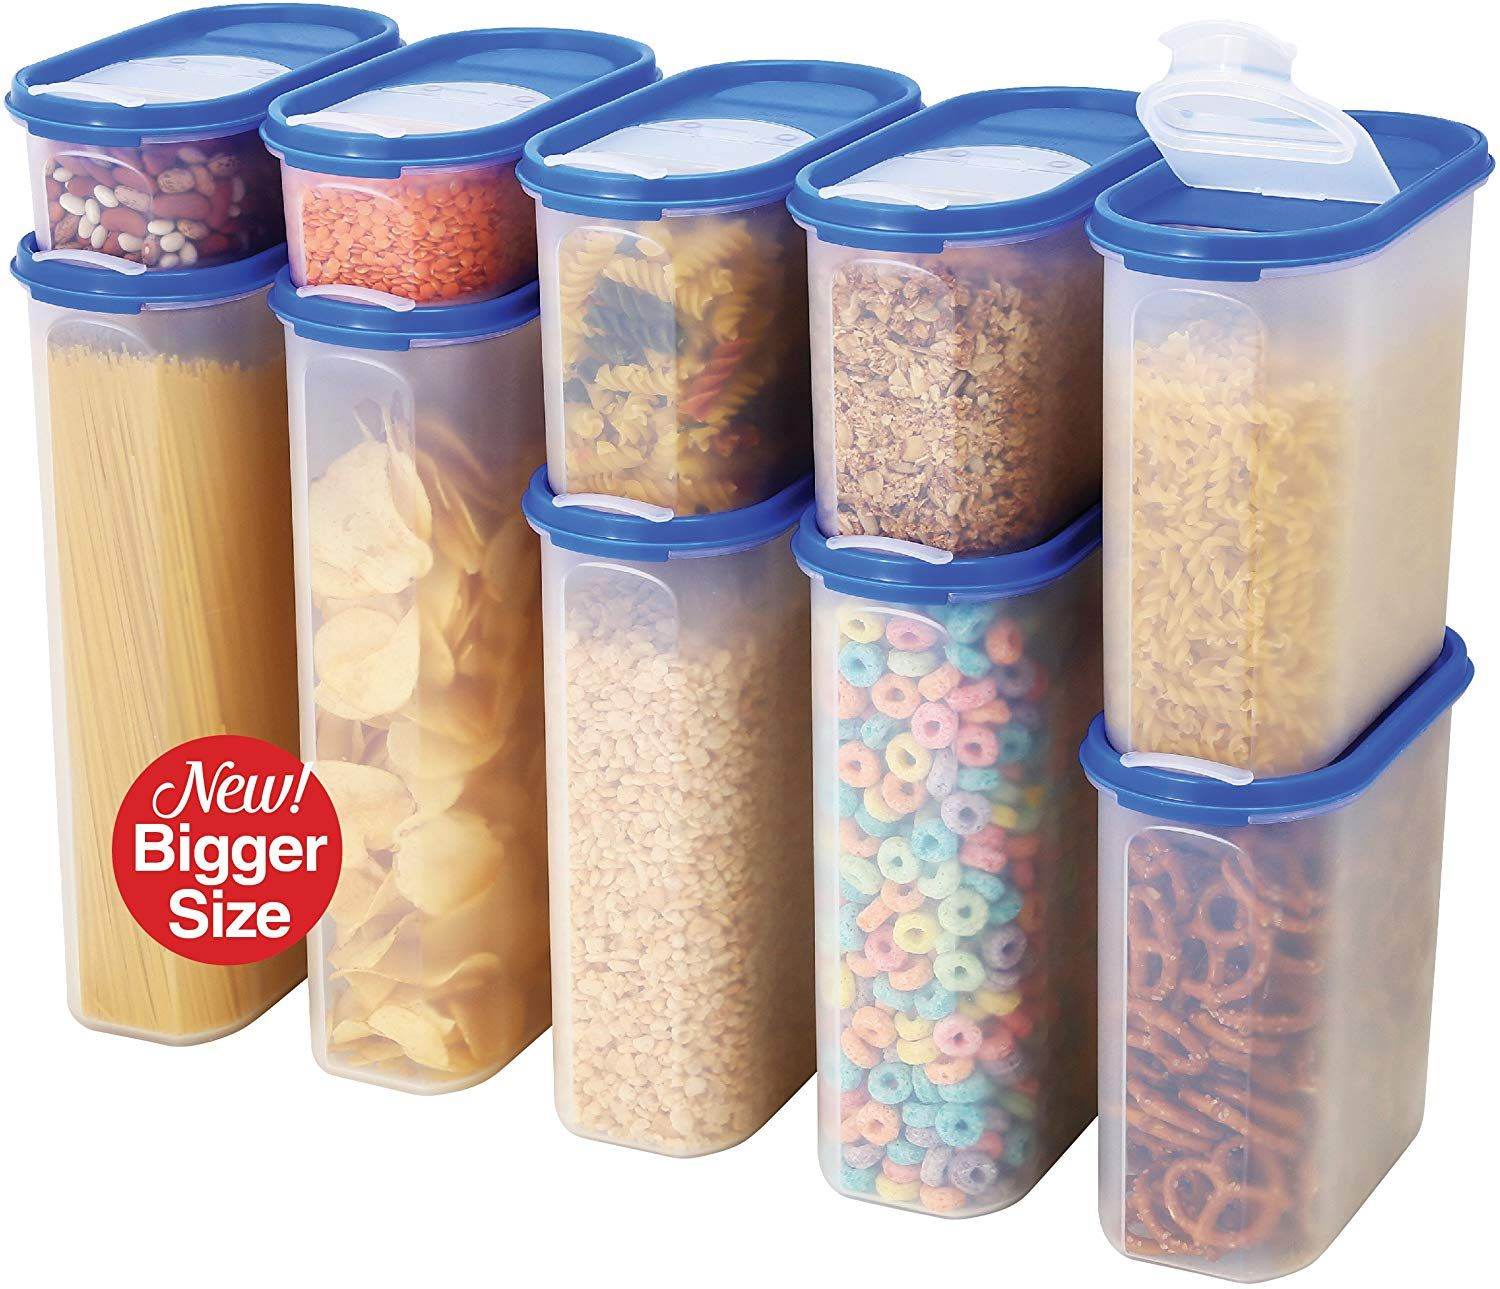 Home In 2020 Food Storage Containers Dry Food Storage Food Storage